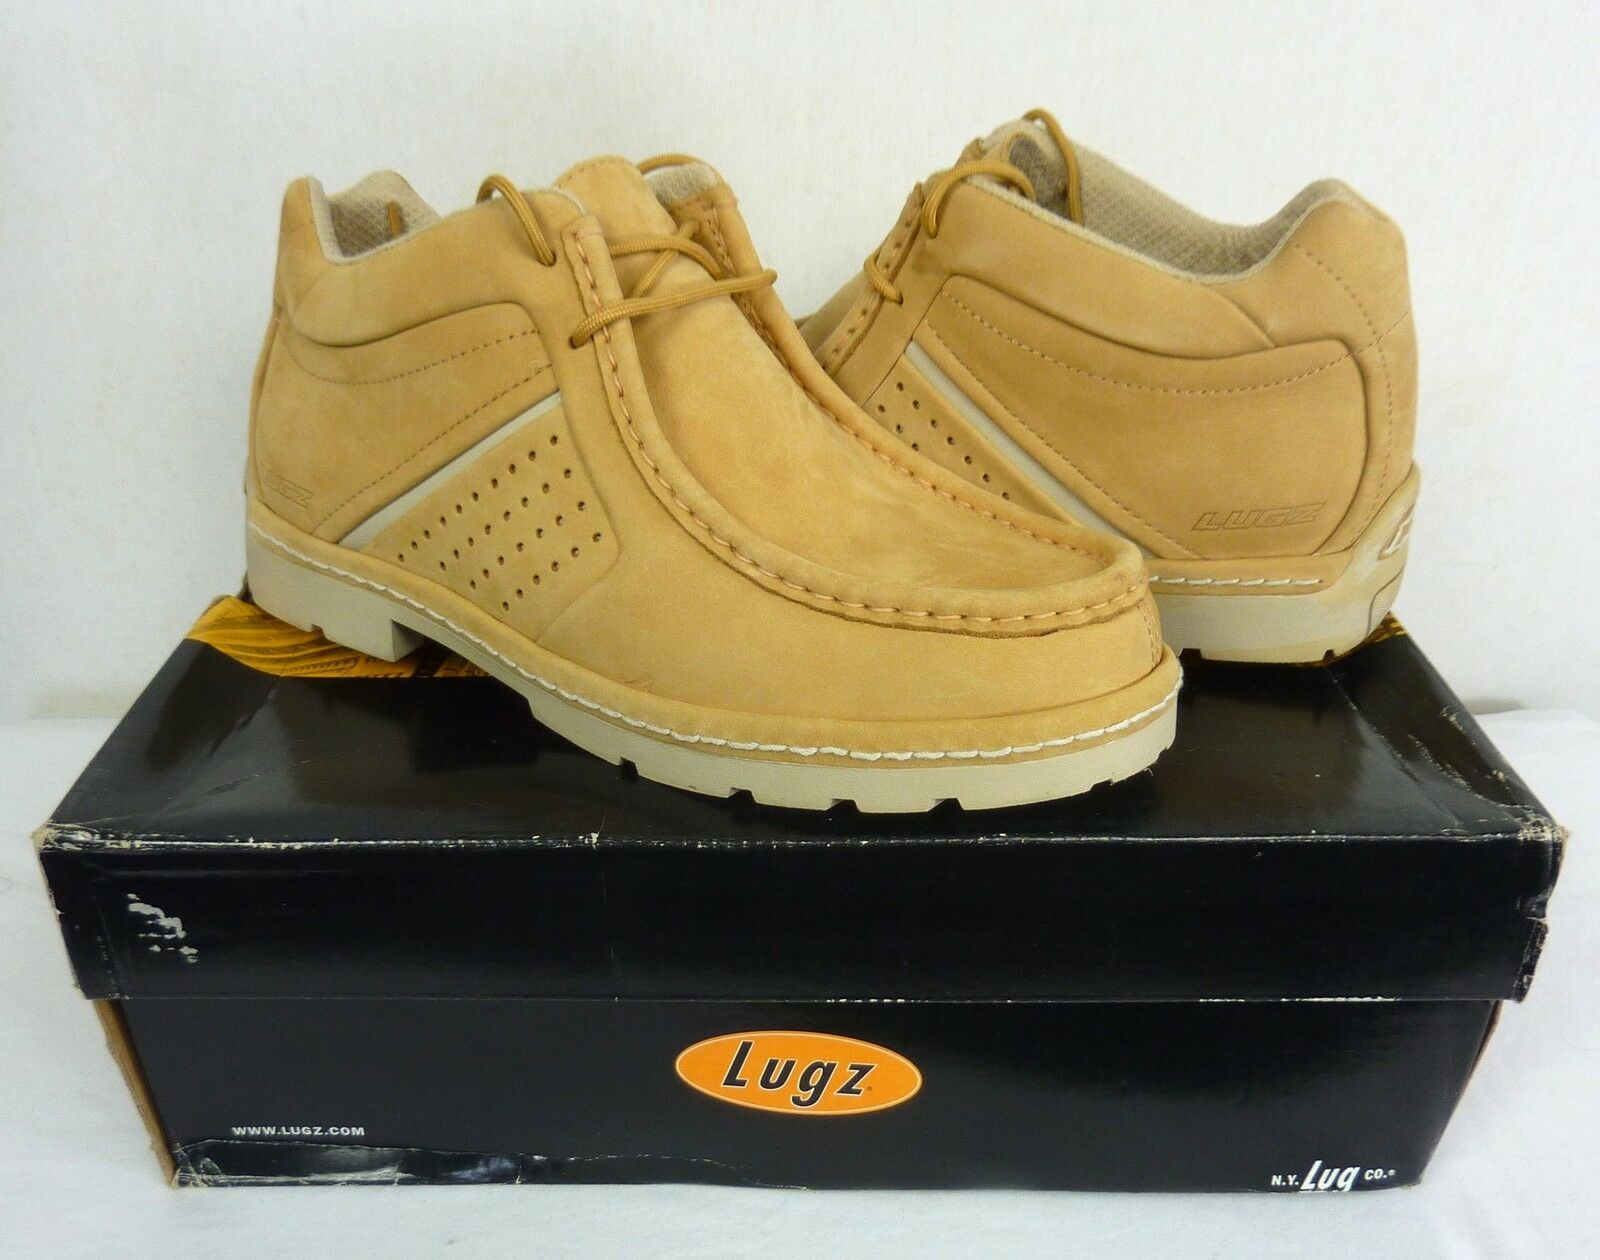 LUGZ SKILLZ MENS SHOES SNEAKERS CREAM SIZE 8.5 US